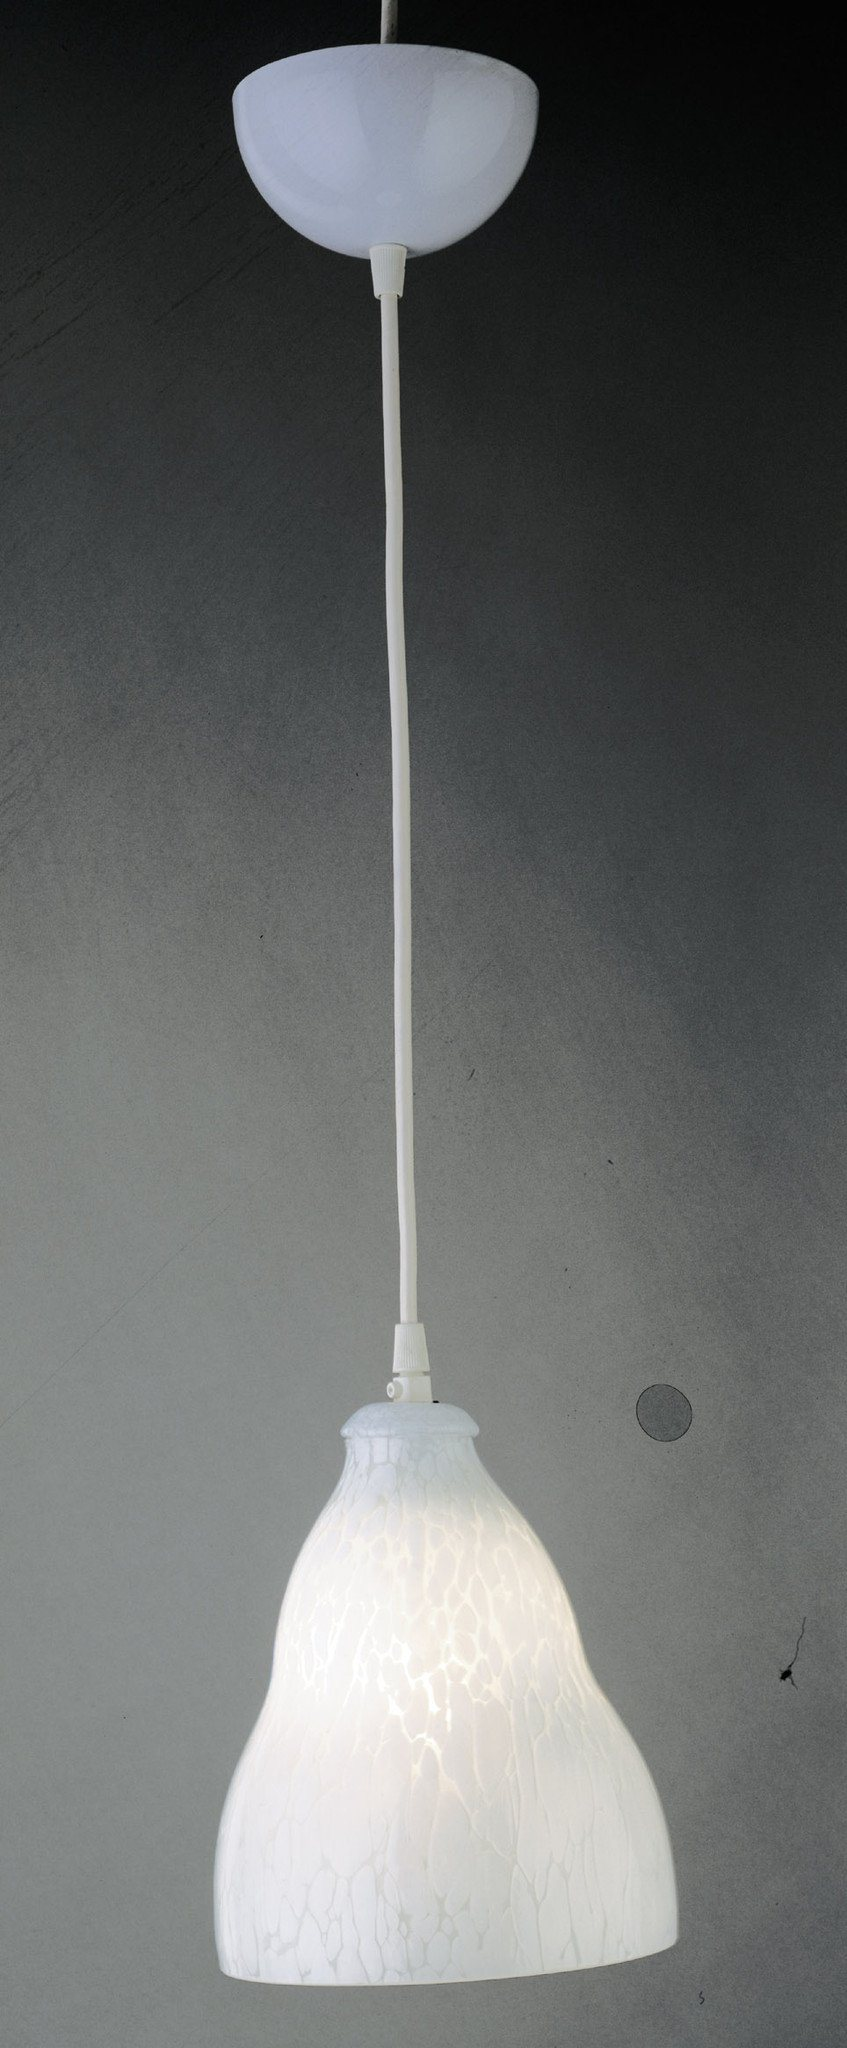 "Vega II 7""w White Mini Pendant Ceiling PLC Lighting"